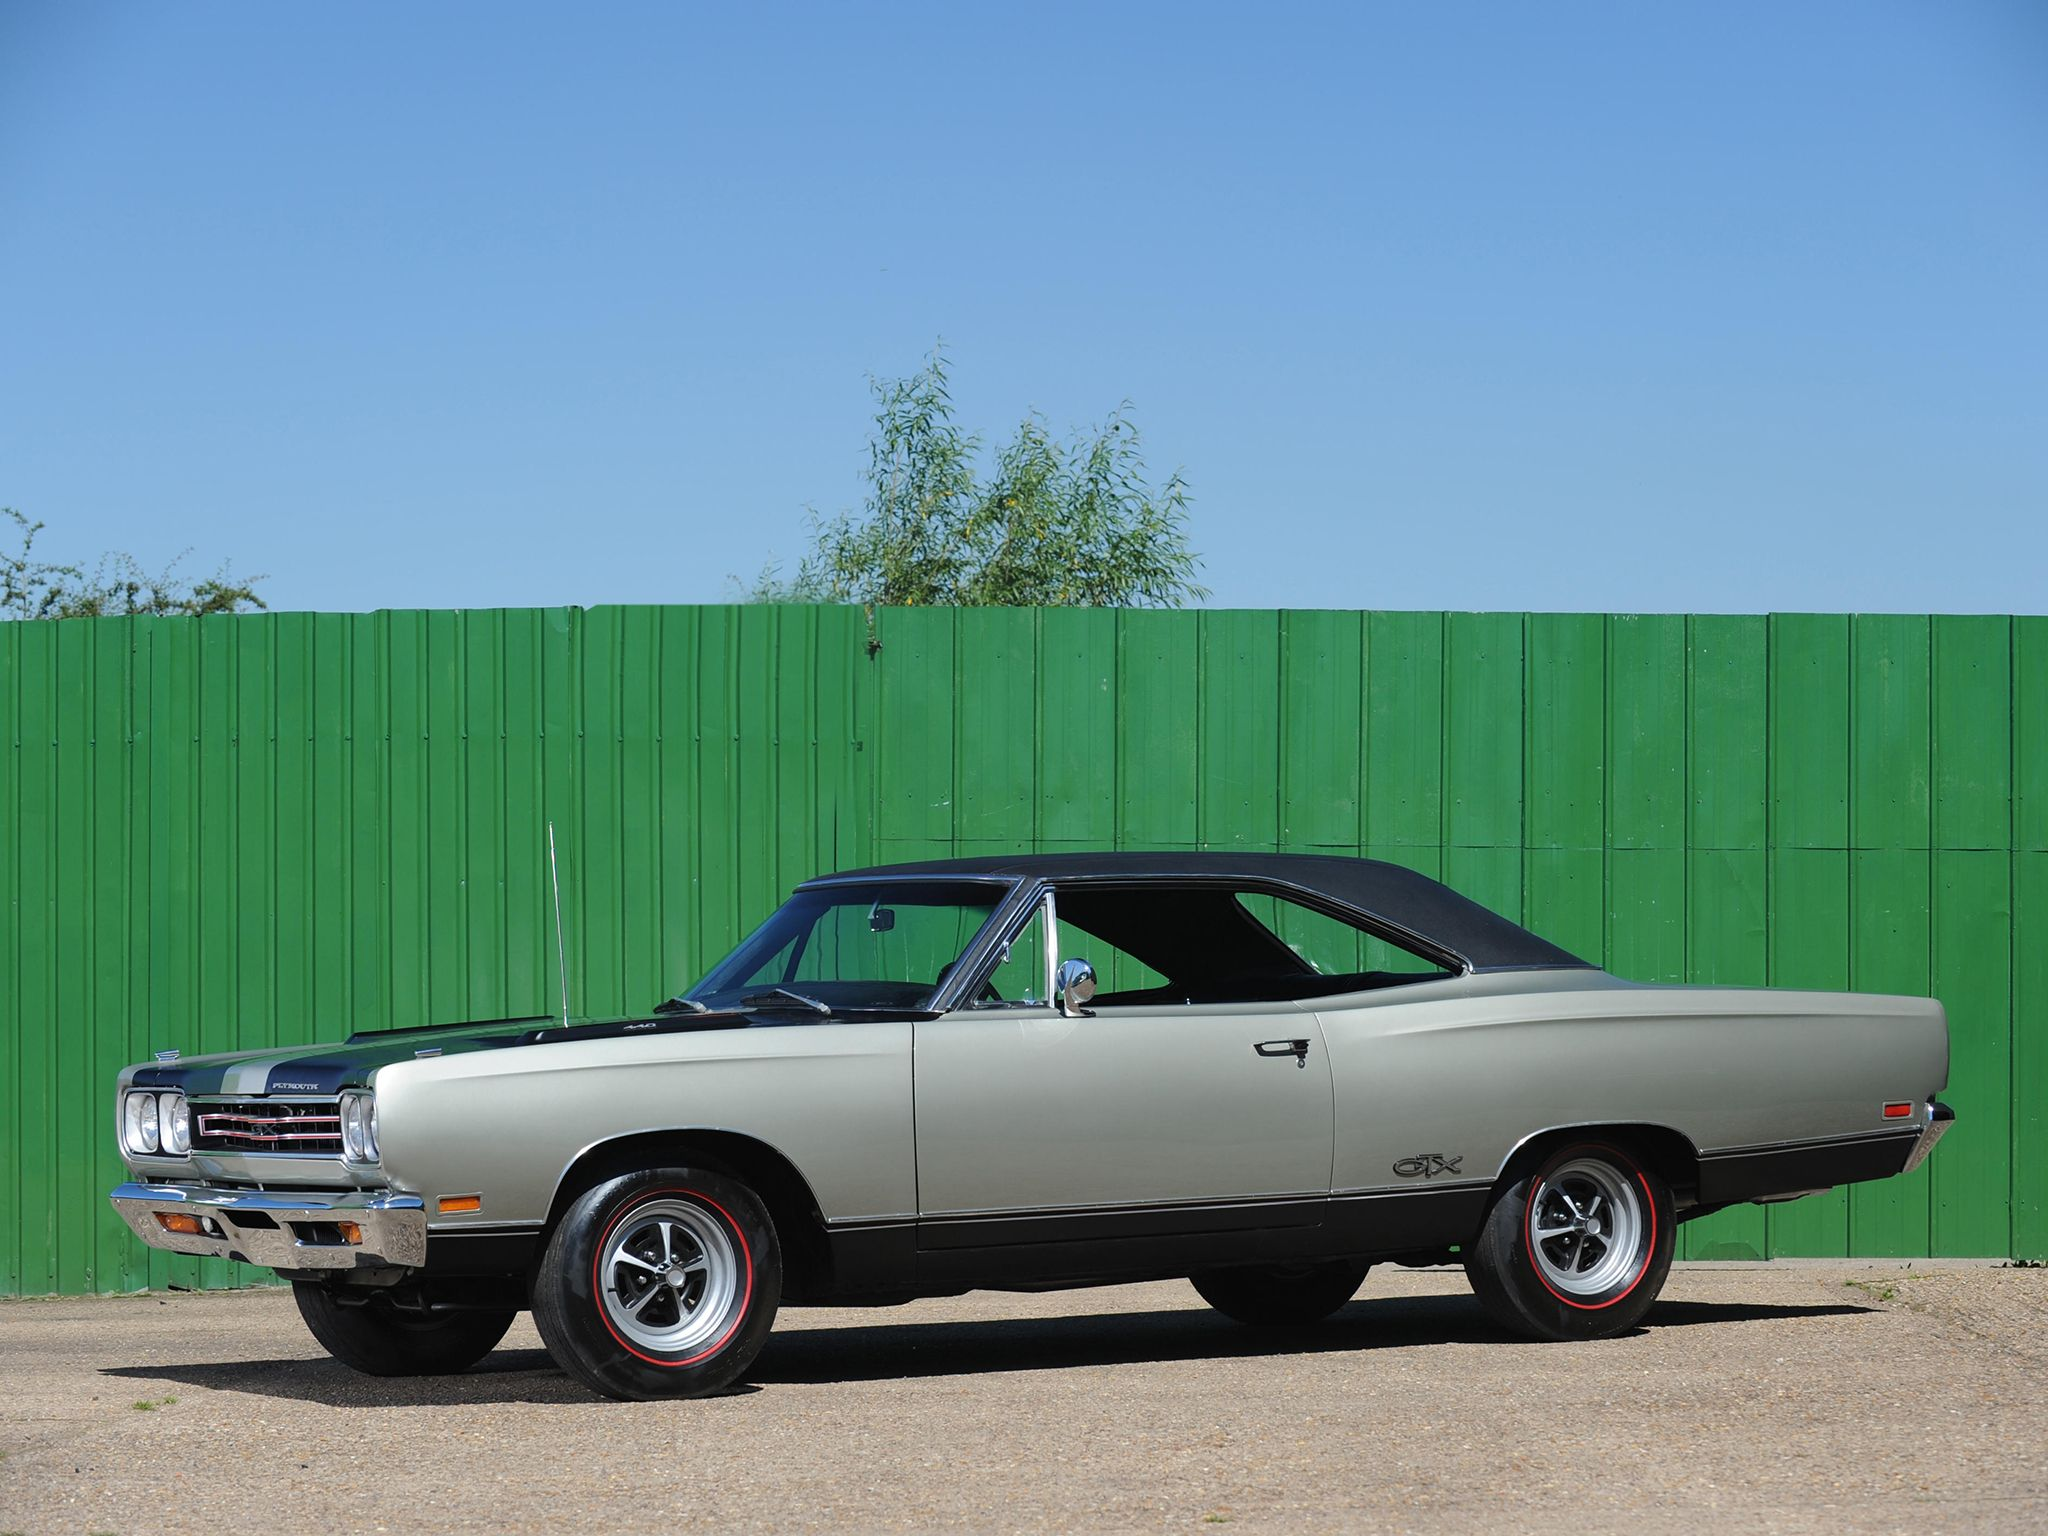 1969 Plymouth Gtx 440 My First New Car Gas Mileage Wasn T Great But Was Thirty Cents Not A Problem